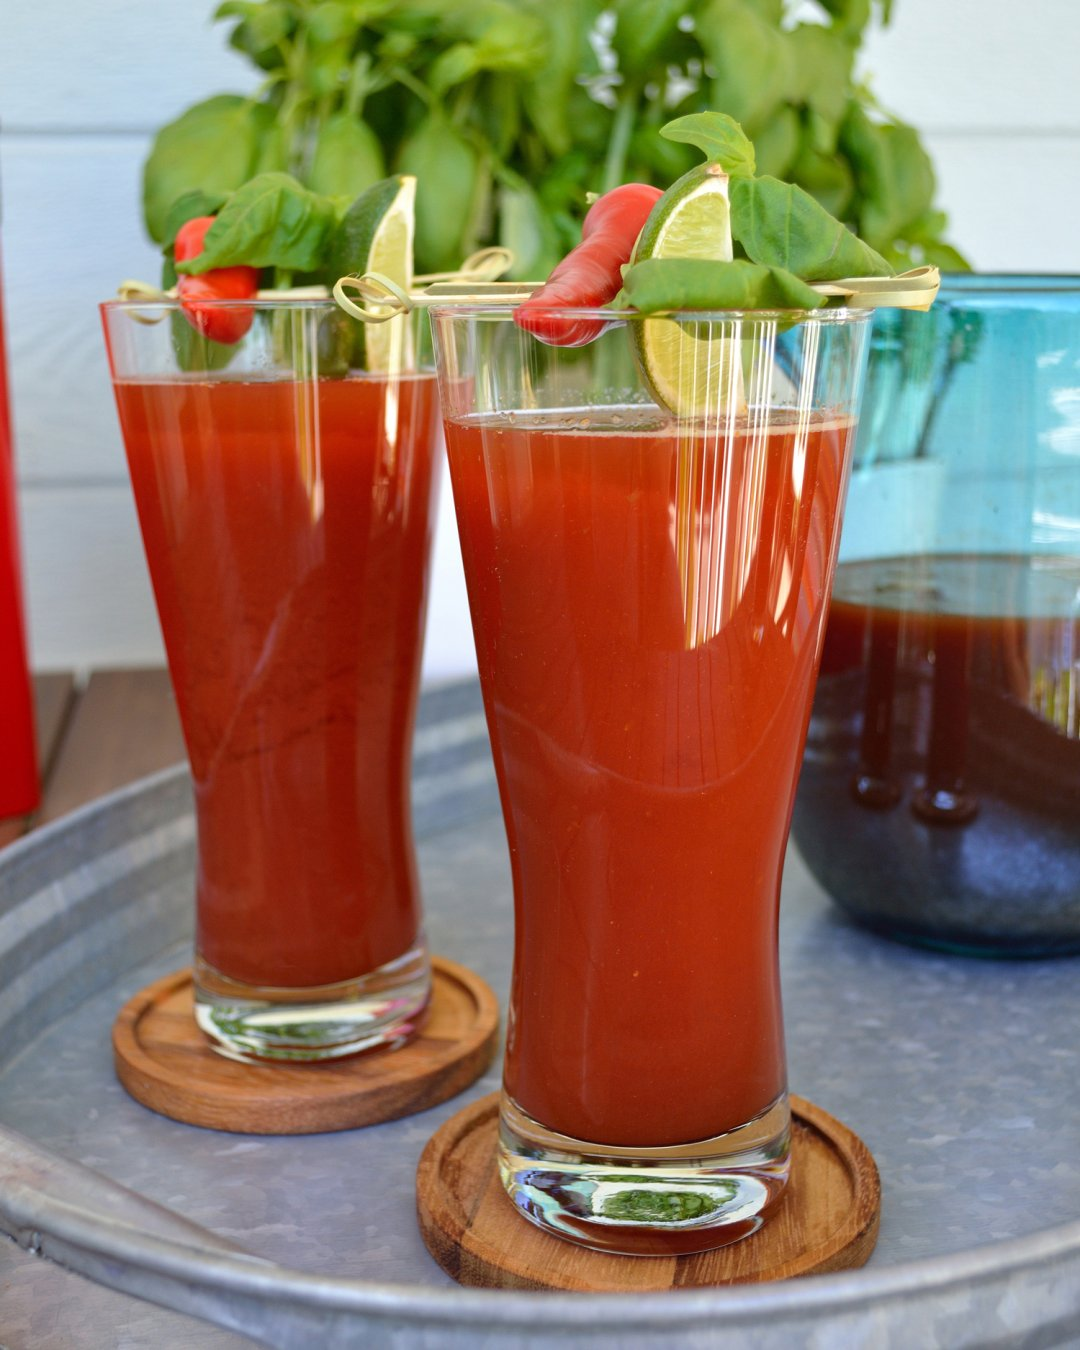 Mexican Drink With Beer And Tomato Juice